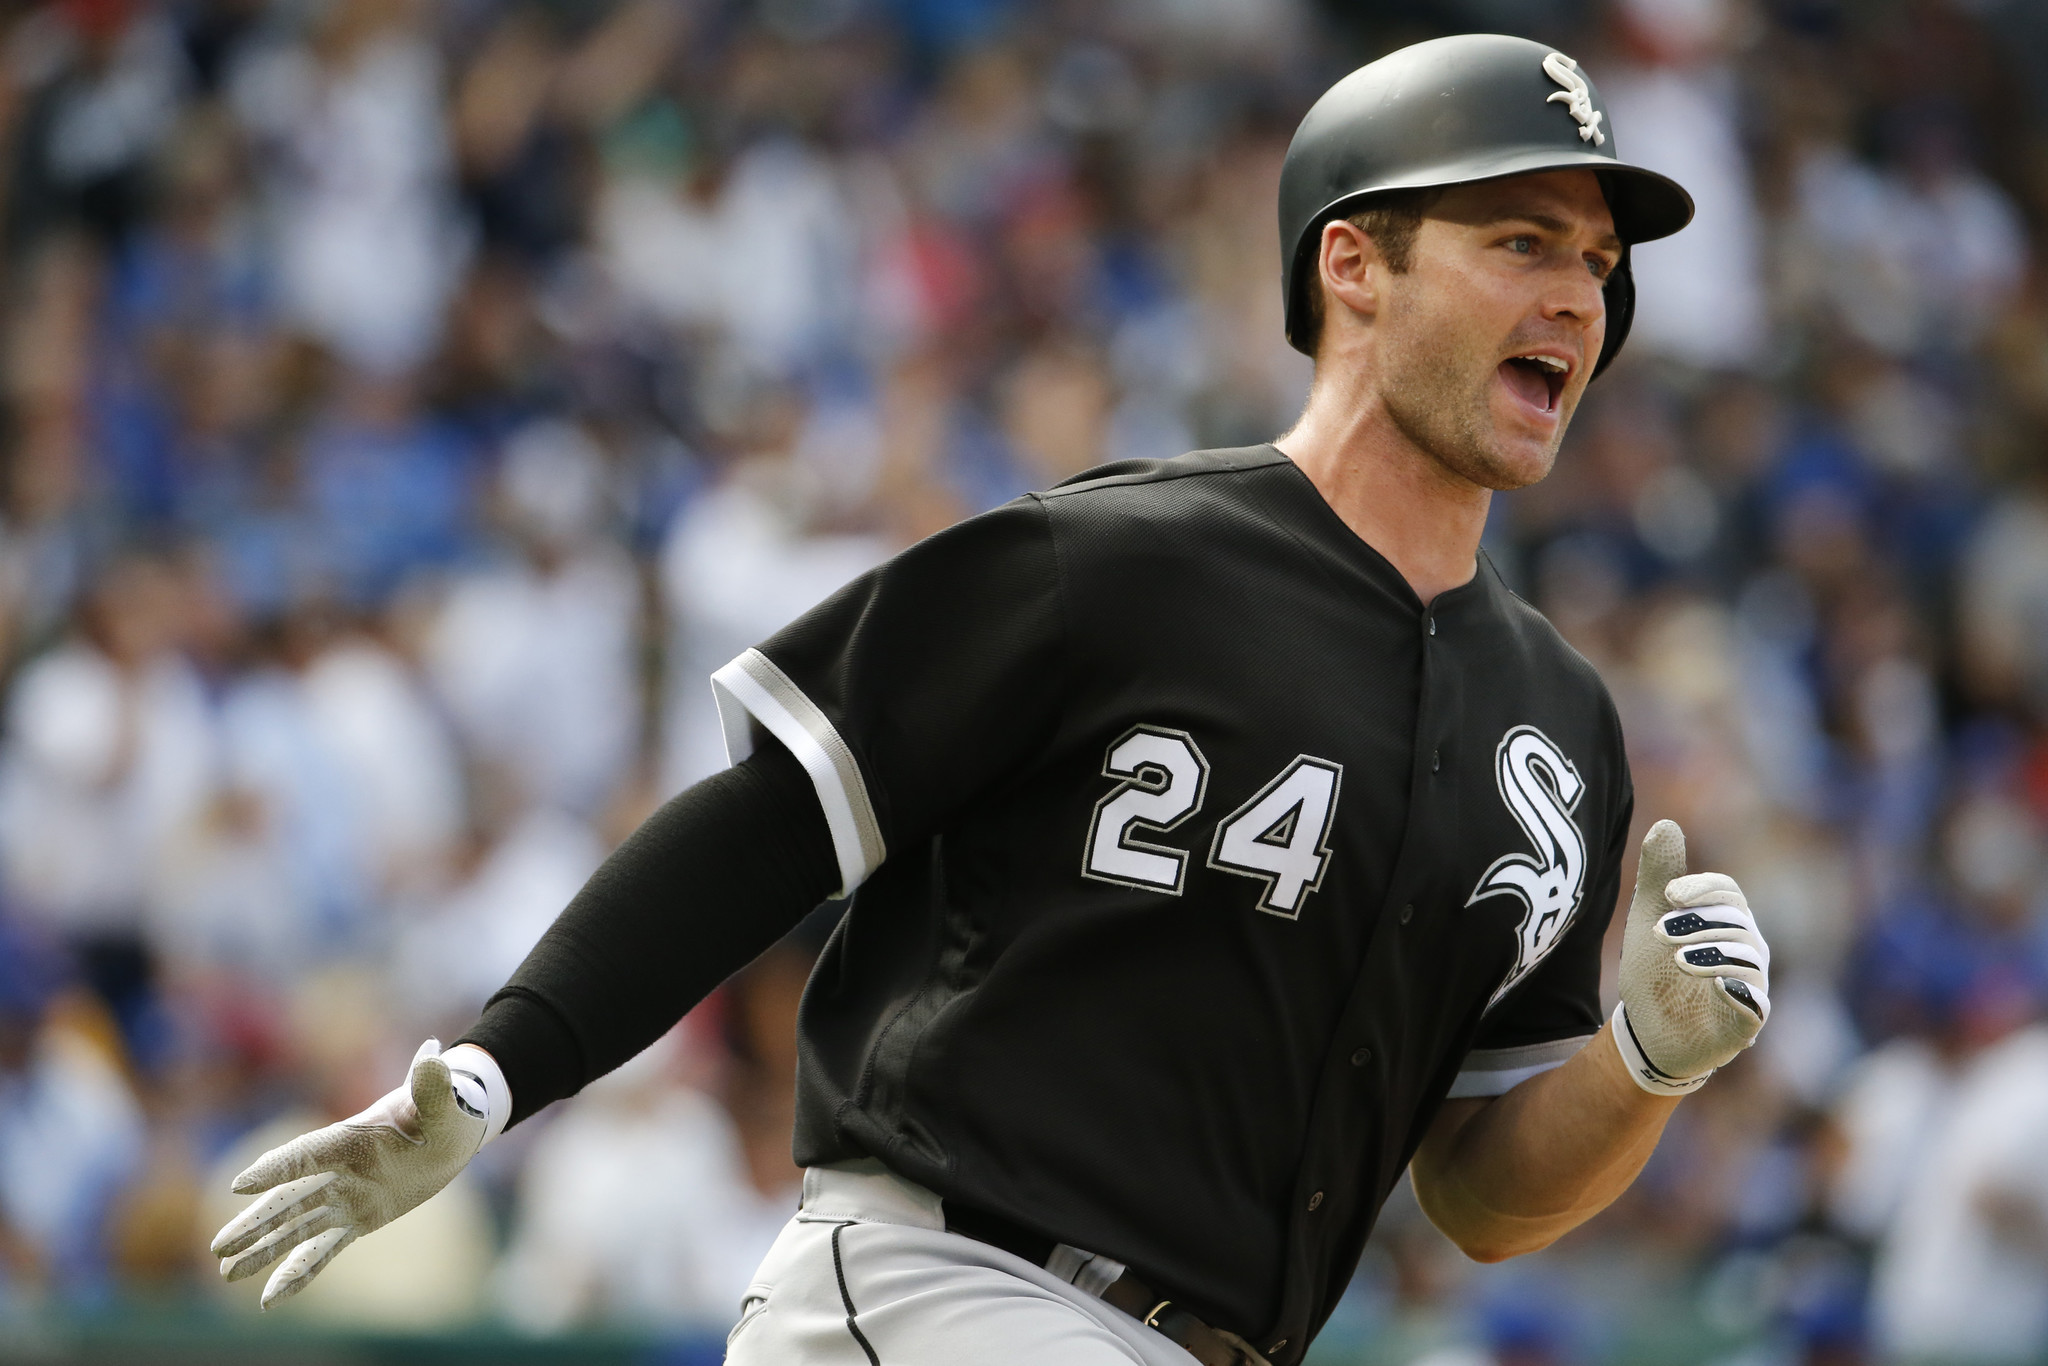 Ct-white-sox-notes-matt-davidson-rehab-spt-0823-20170822